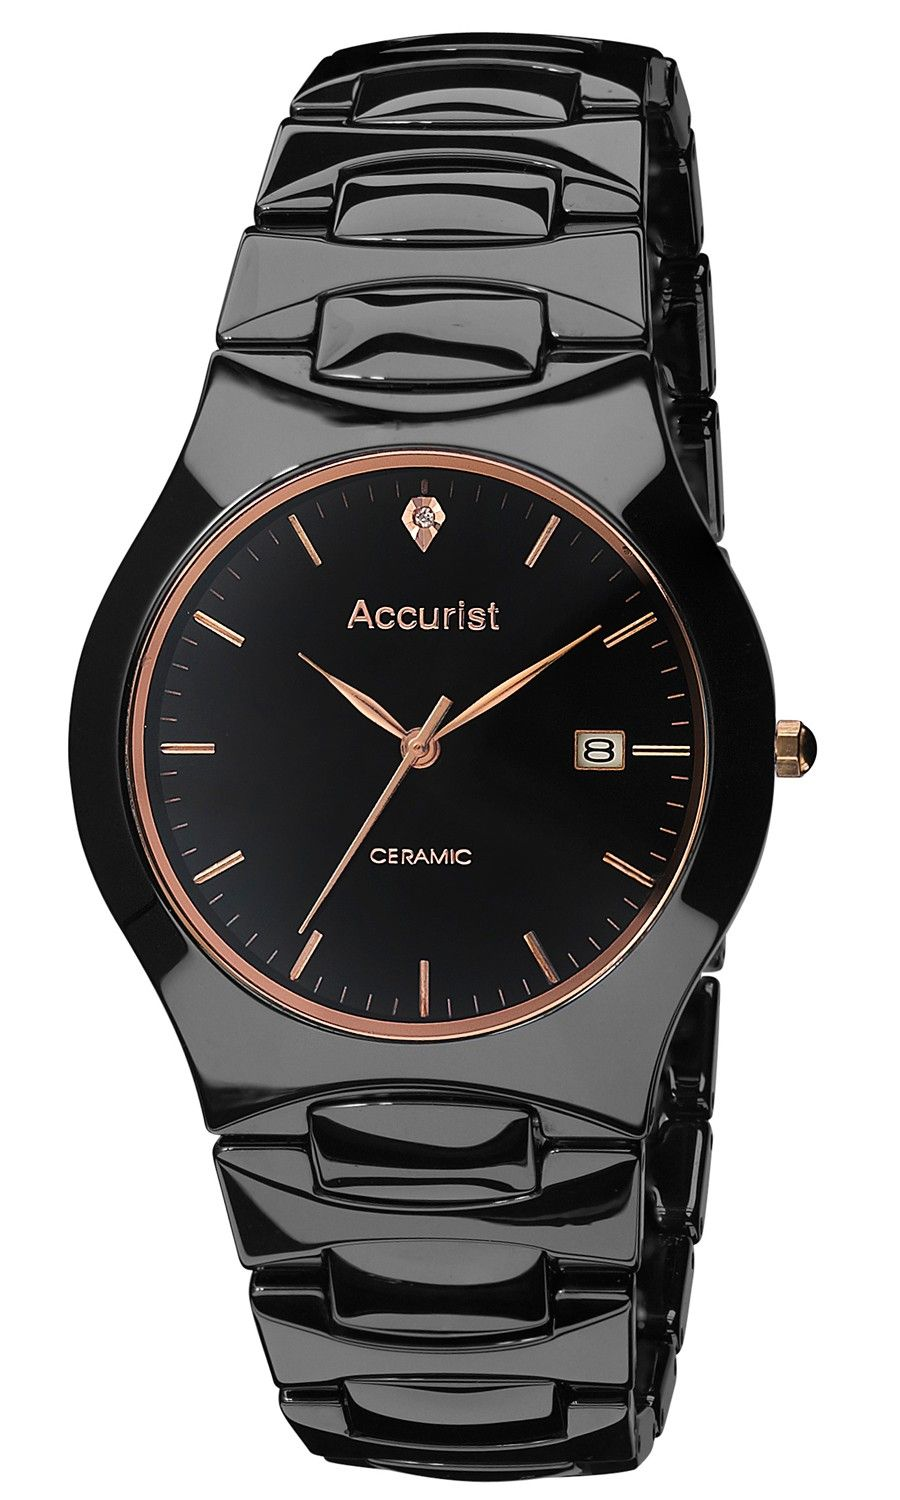 8a6f5be3e Mens Ceramic Bracelet Watch (MB992R) Full black ceramic case and bracelet  watch featuring rose gold tone hands and indexes,a genuine diamond at  12'oclock on ...